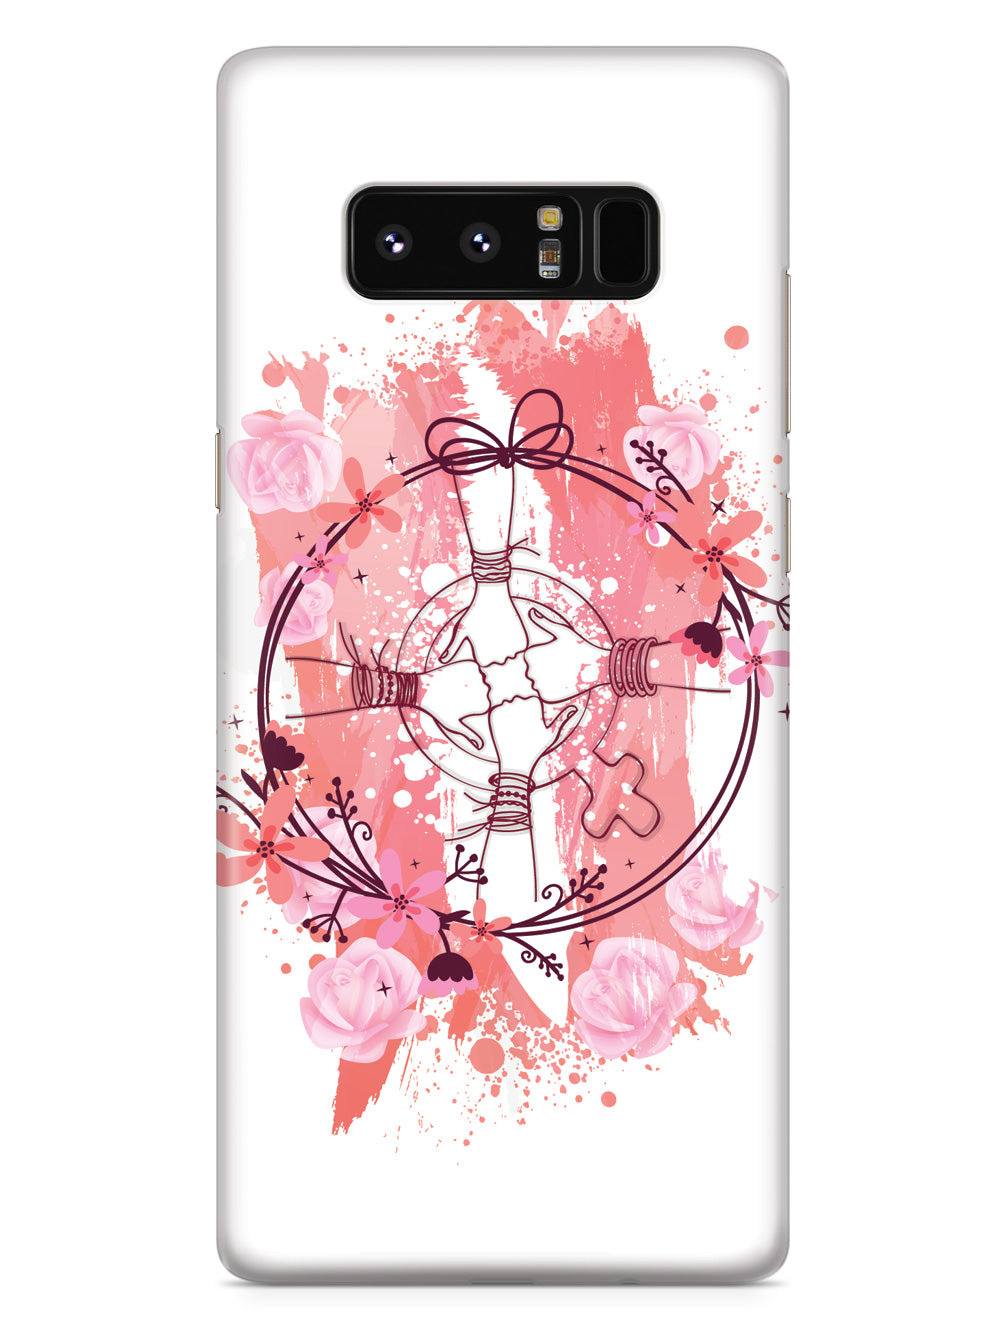 Women United - Thumbs Up Pink Flowers Case